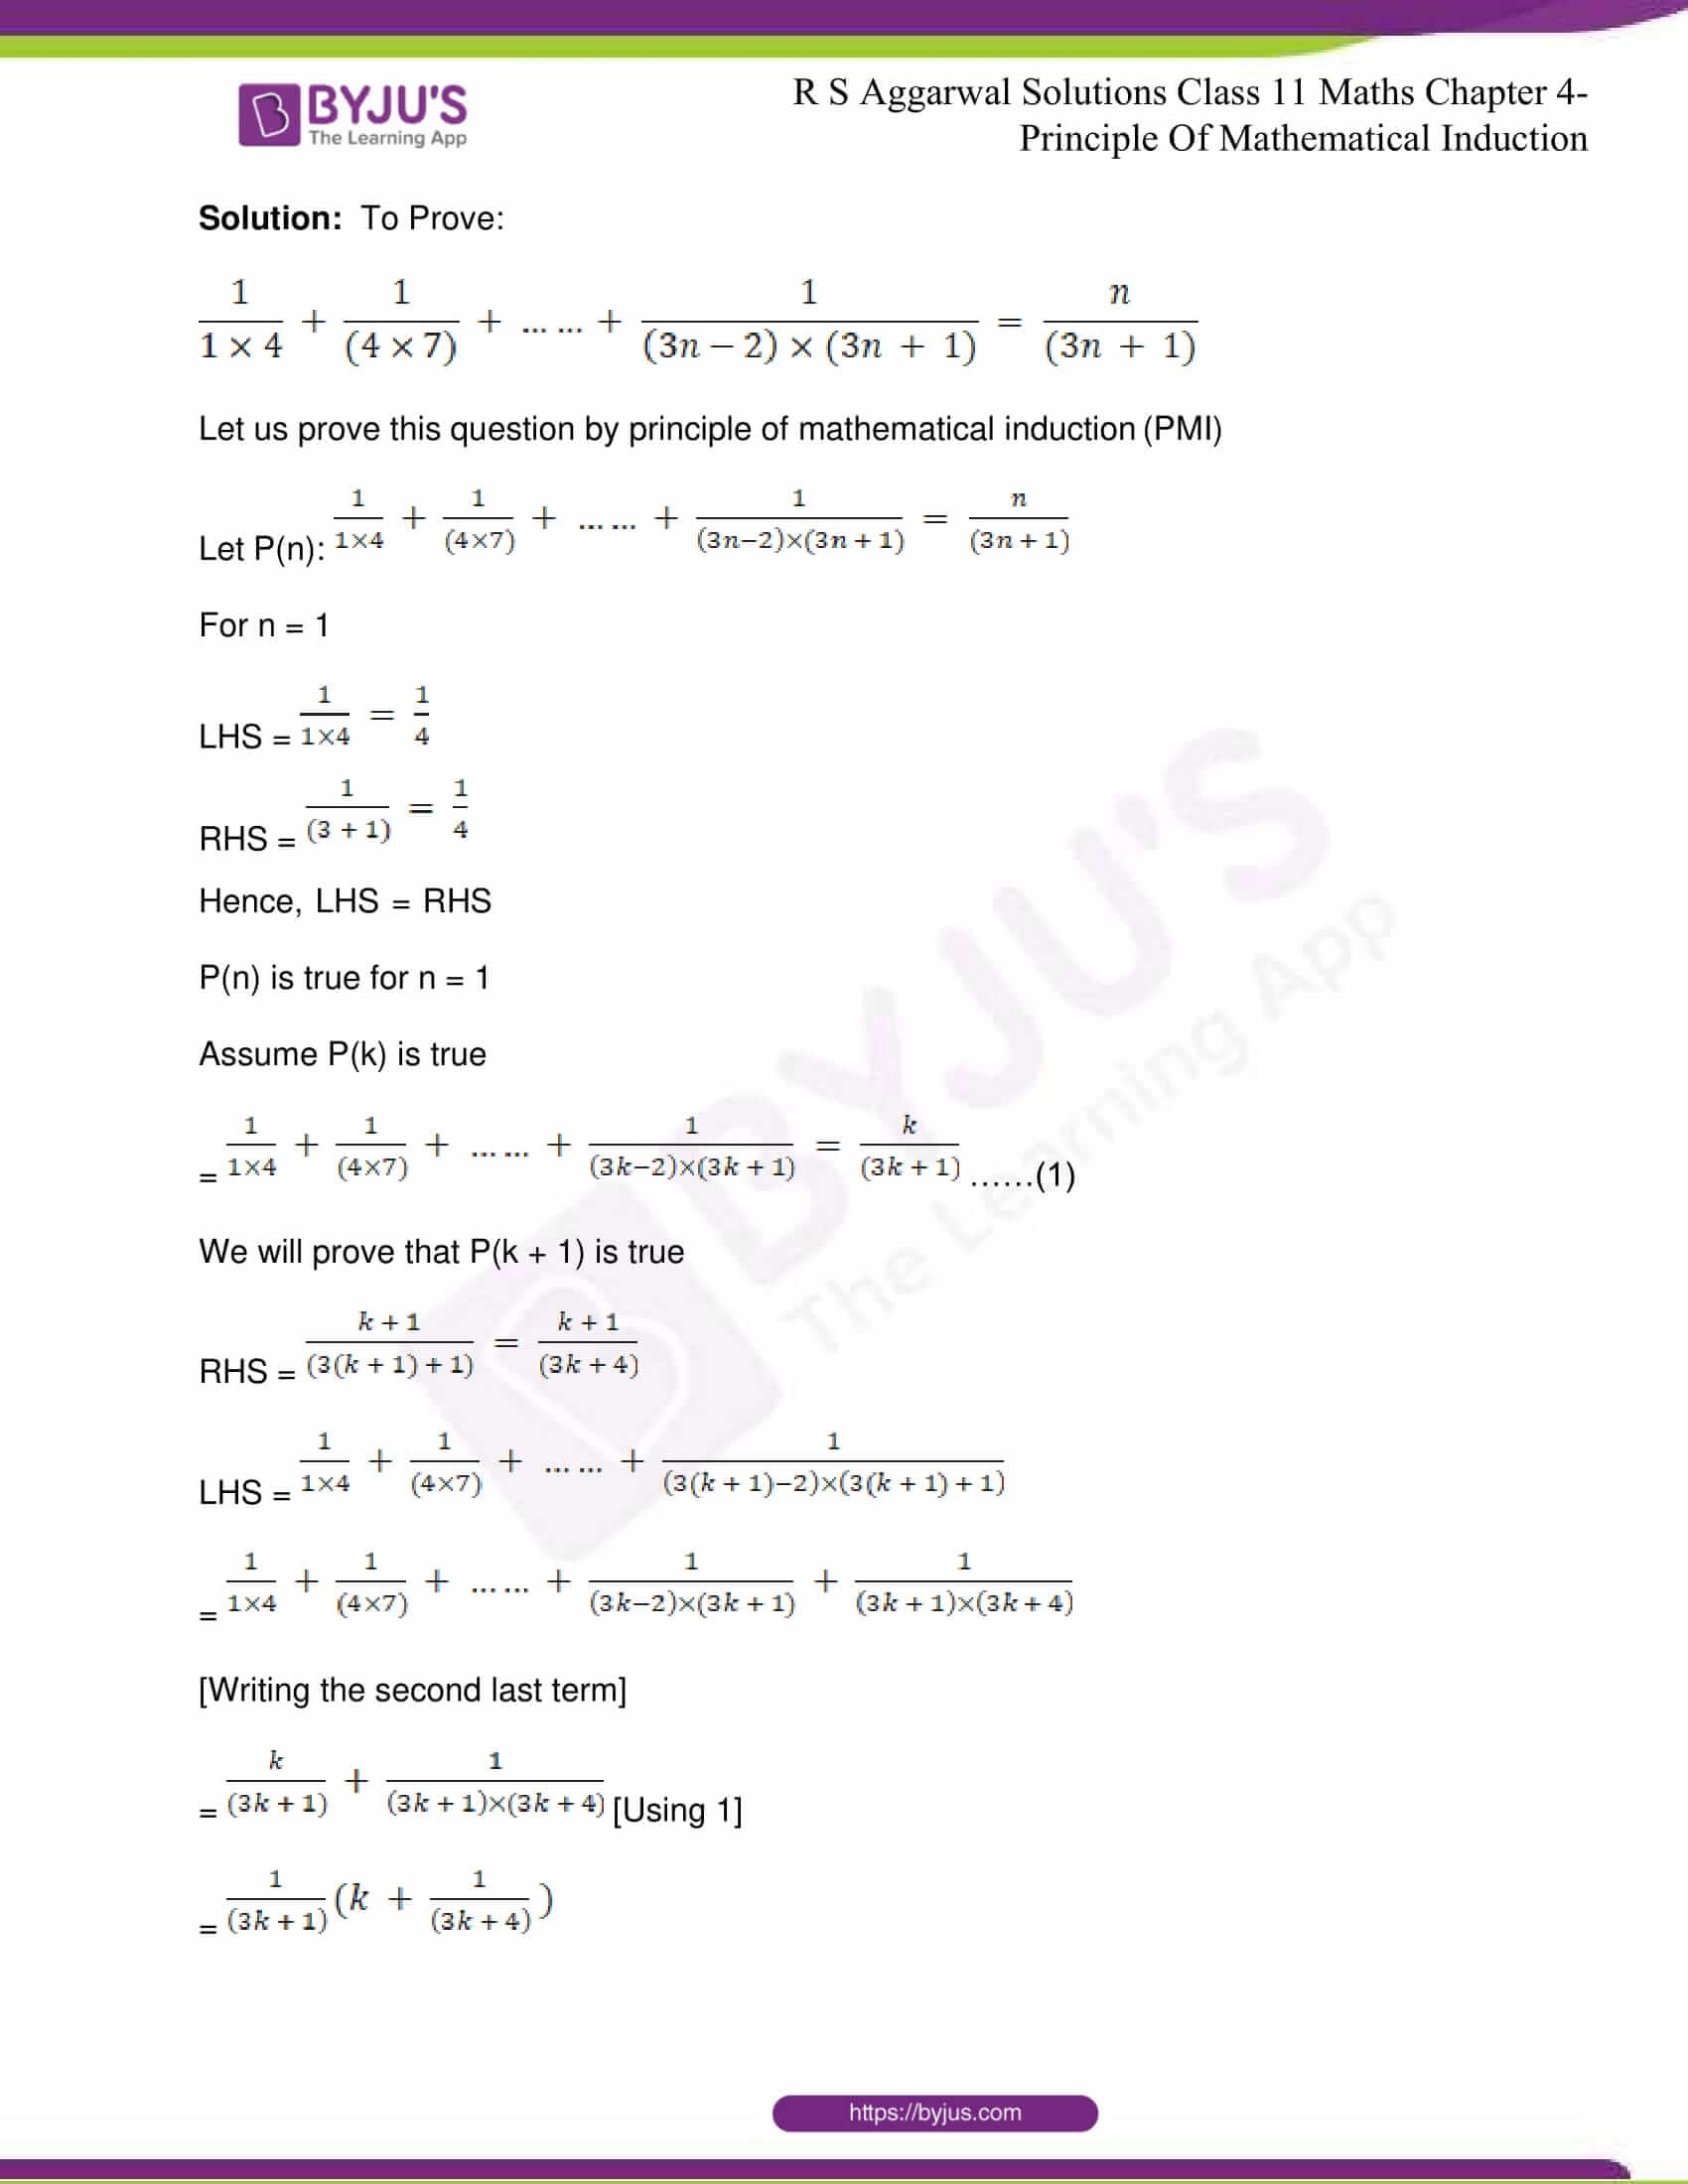 RS Aggarwal Sol Class 11 Maths Chapter 4